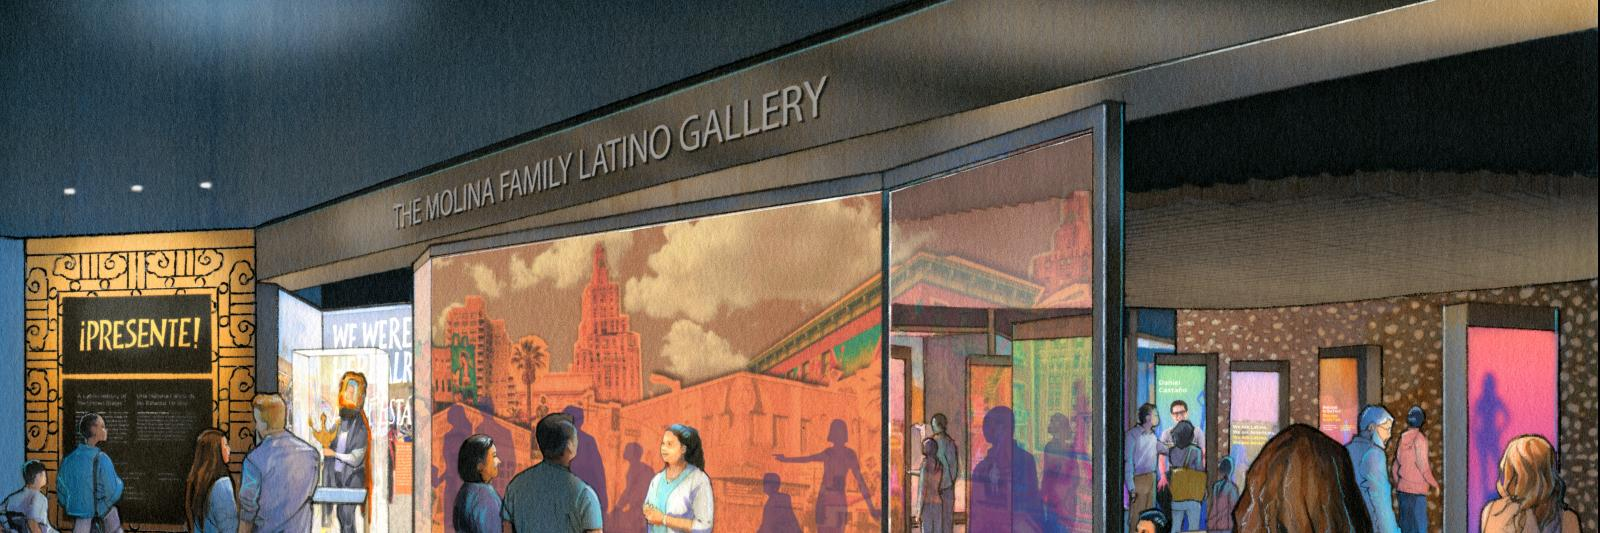 Artistic rendering of the entrance to the Molina Family Latino Gallery